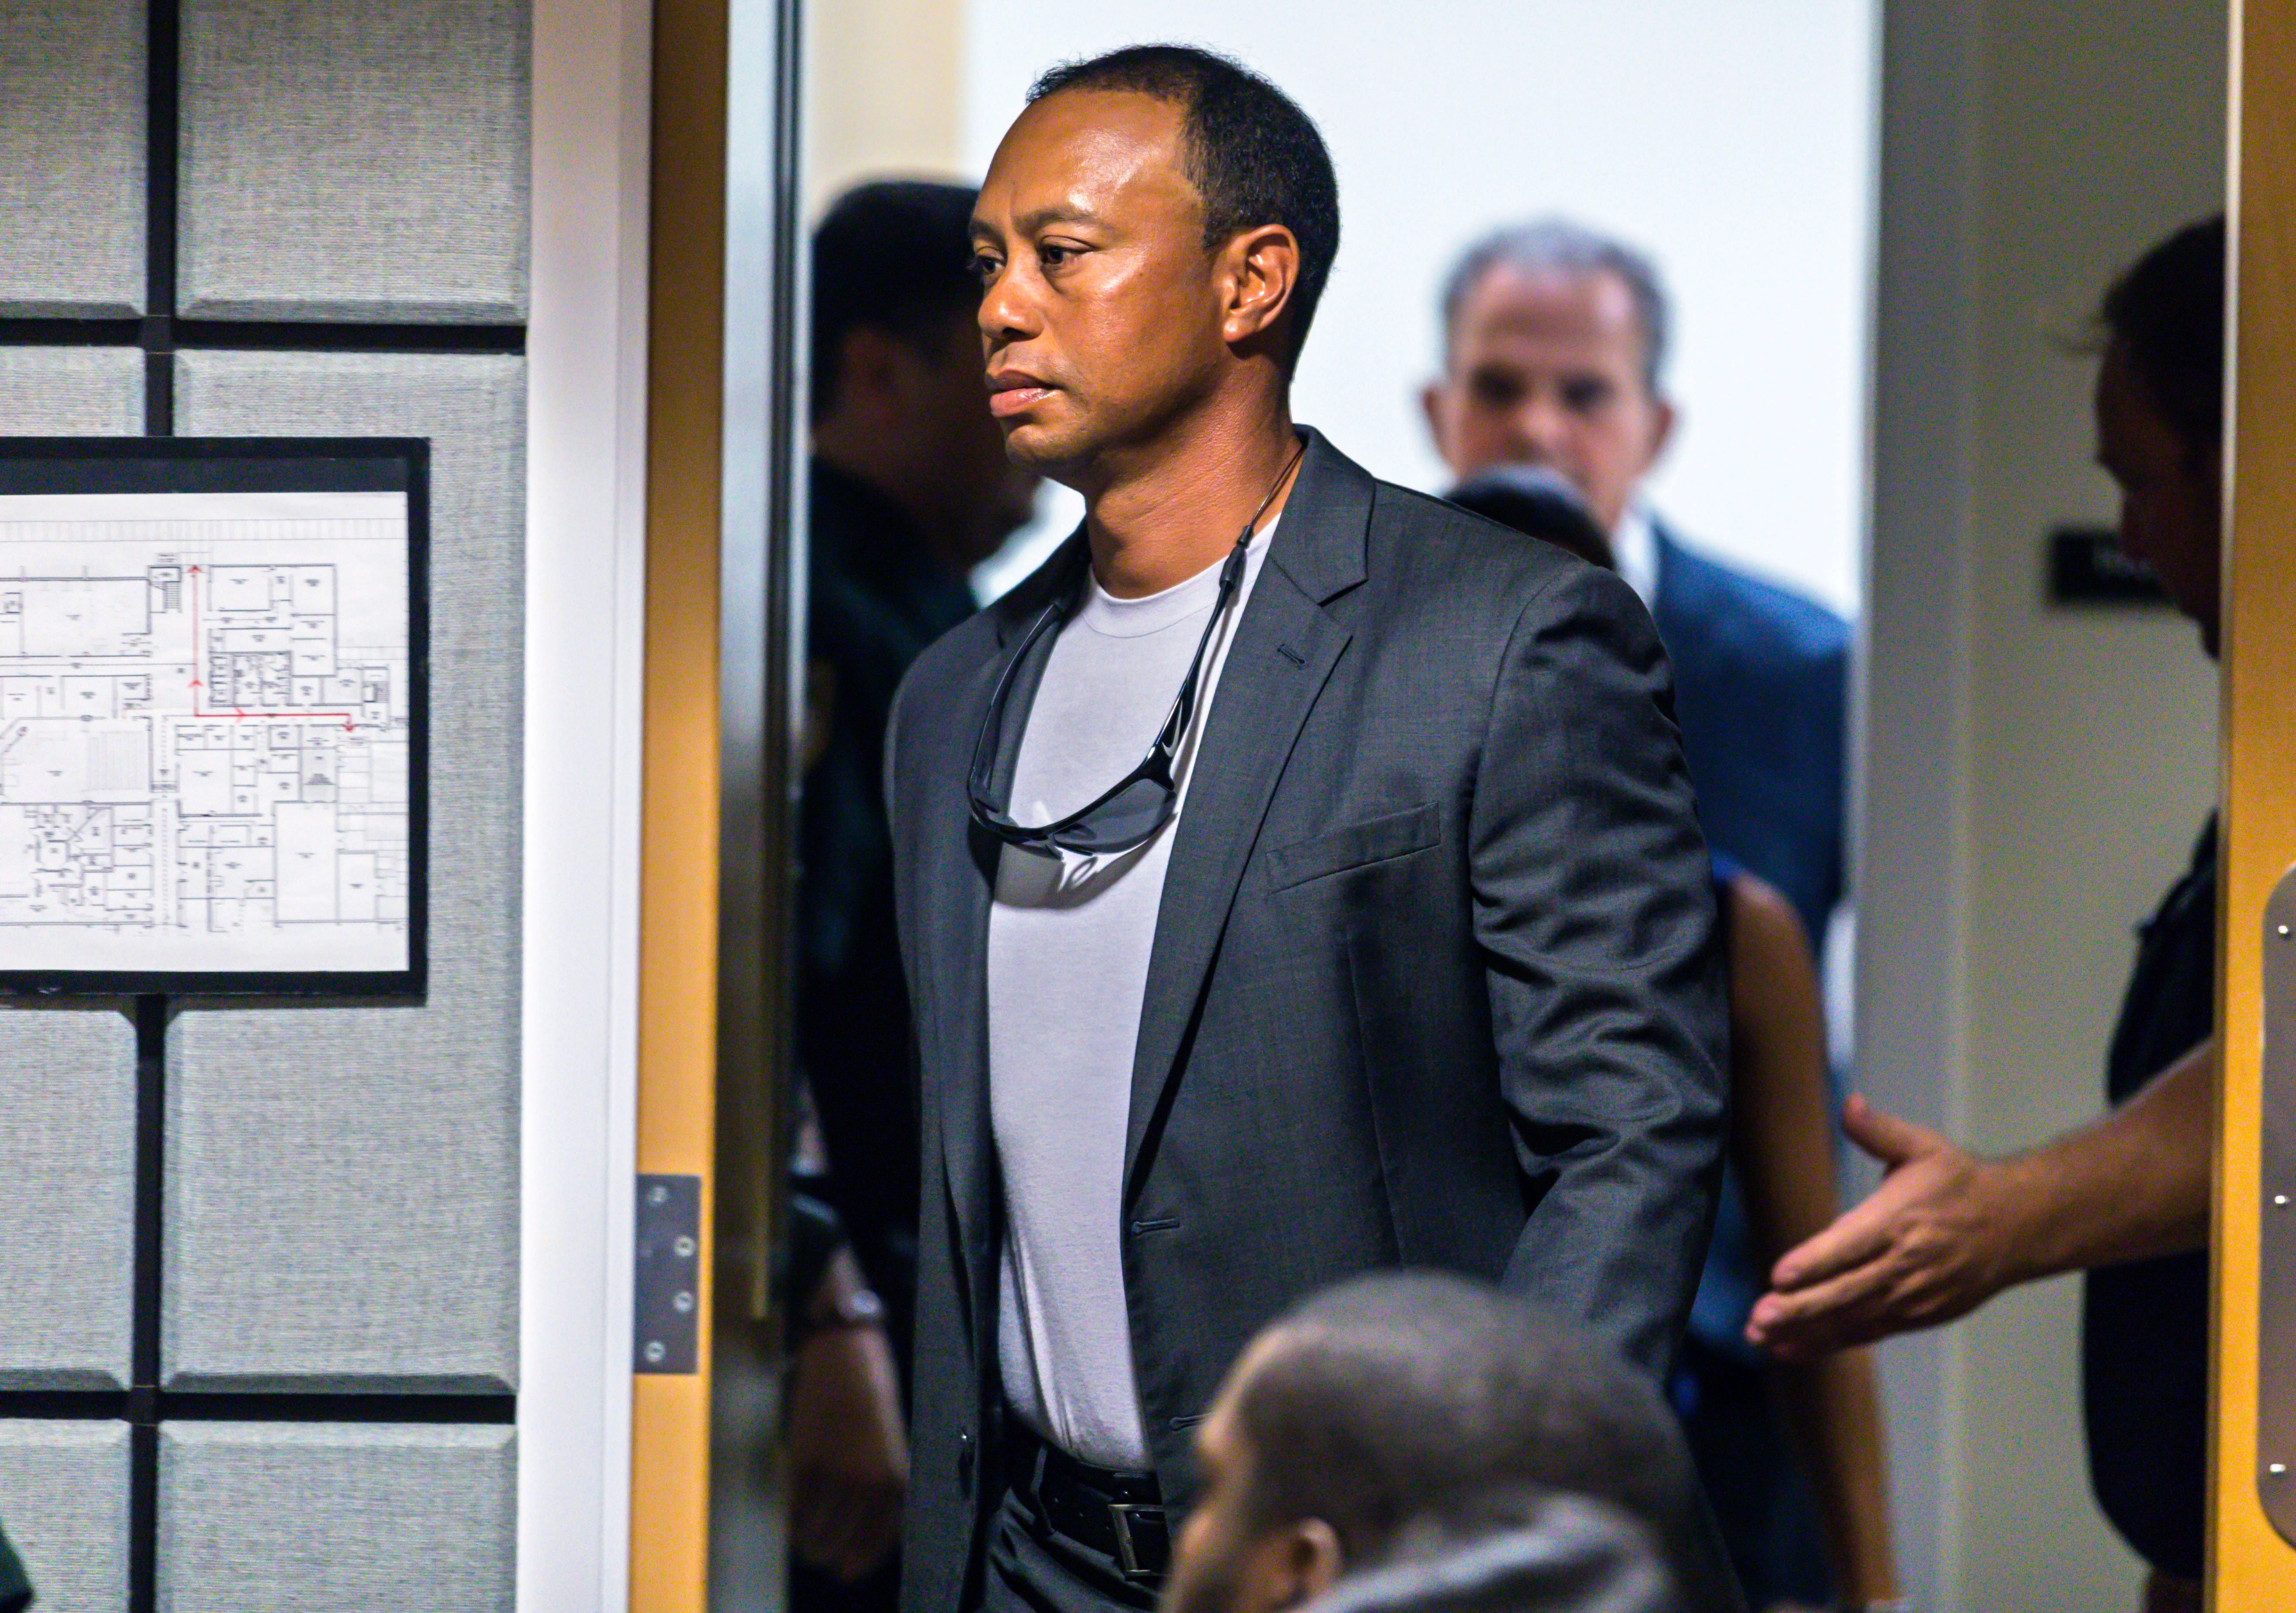 Tiger Woods enters Palm Beach County court on October 27, 2017 in Palm Beach Gardens, Florida. | Source: Getty Images